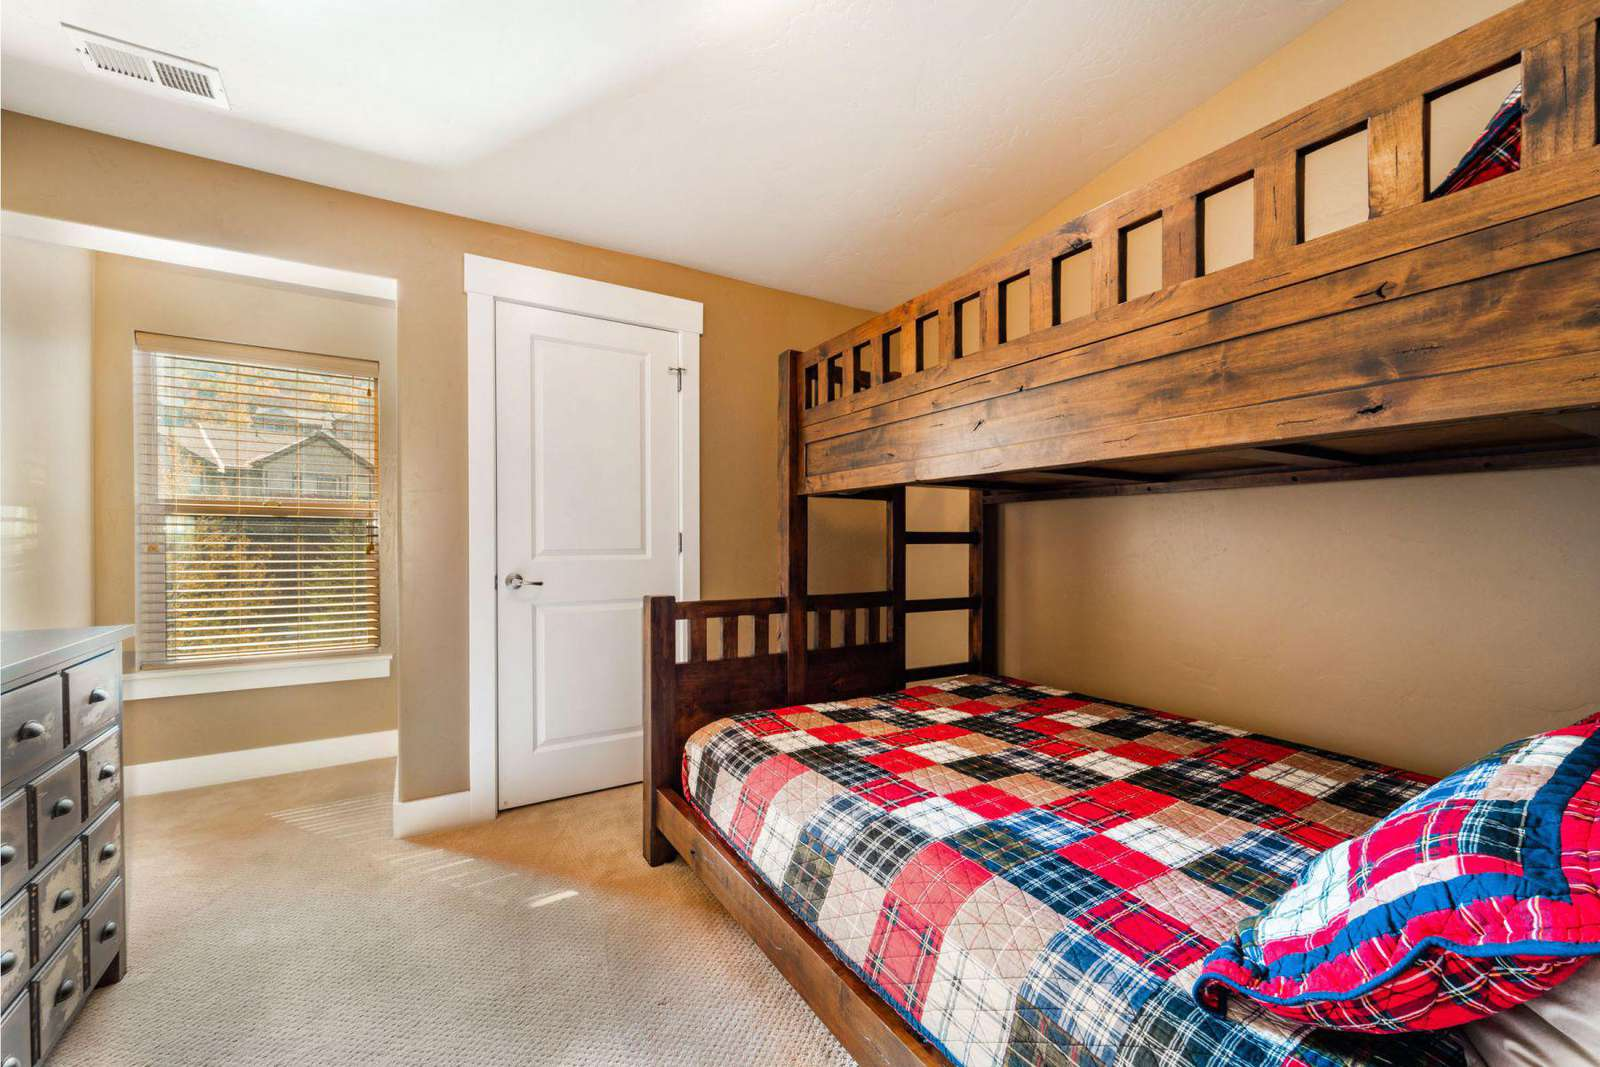 Bunkbed room with personal closet